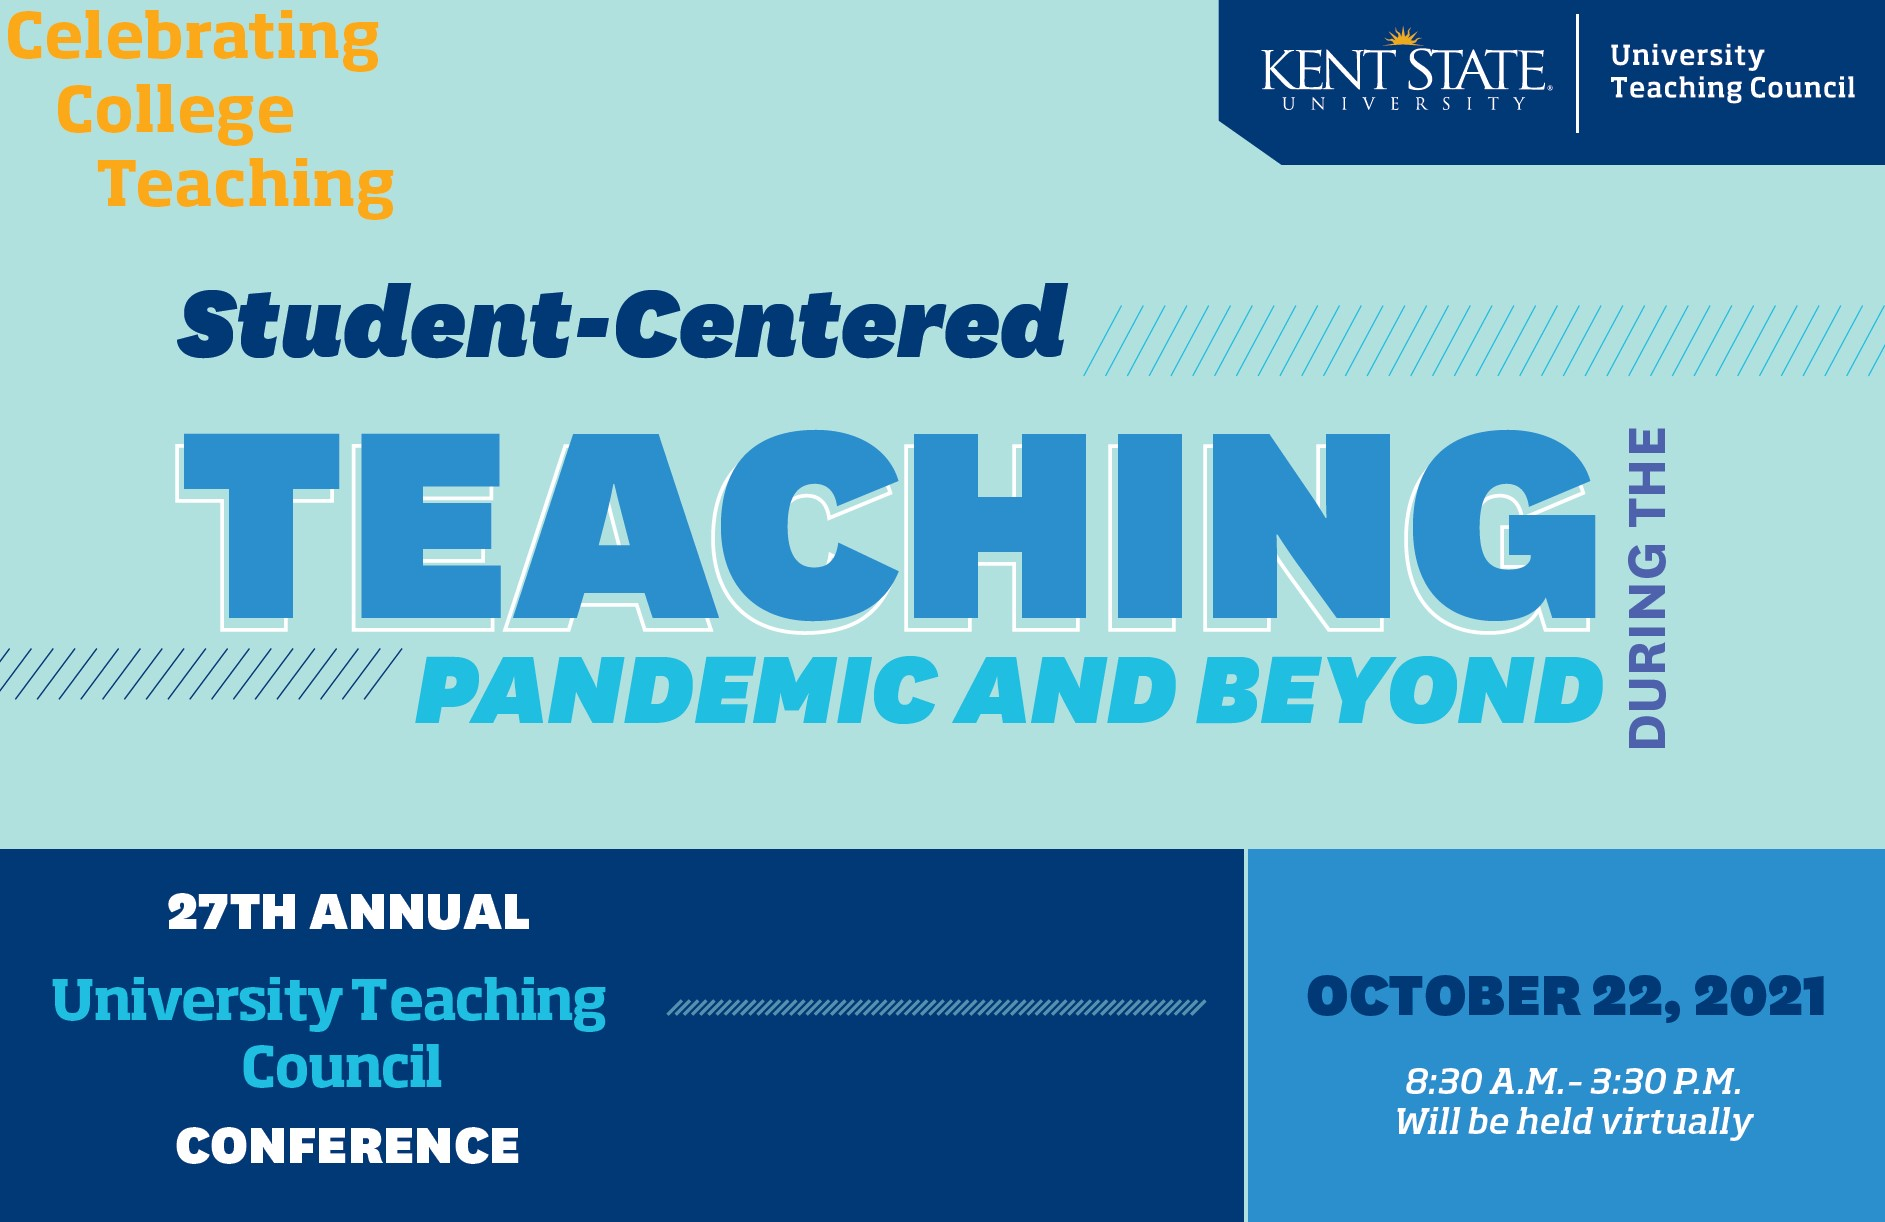 Celebrating College Teaching Save the Date